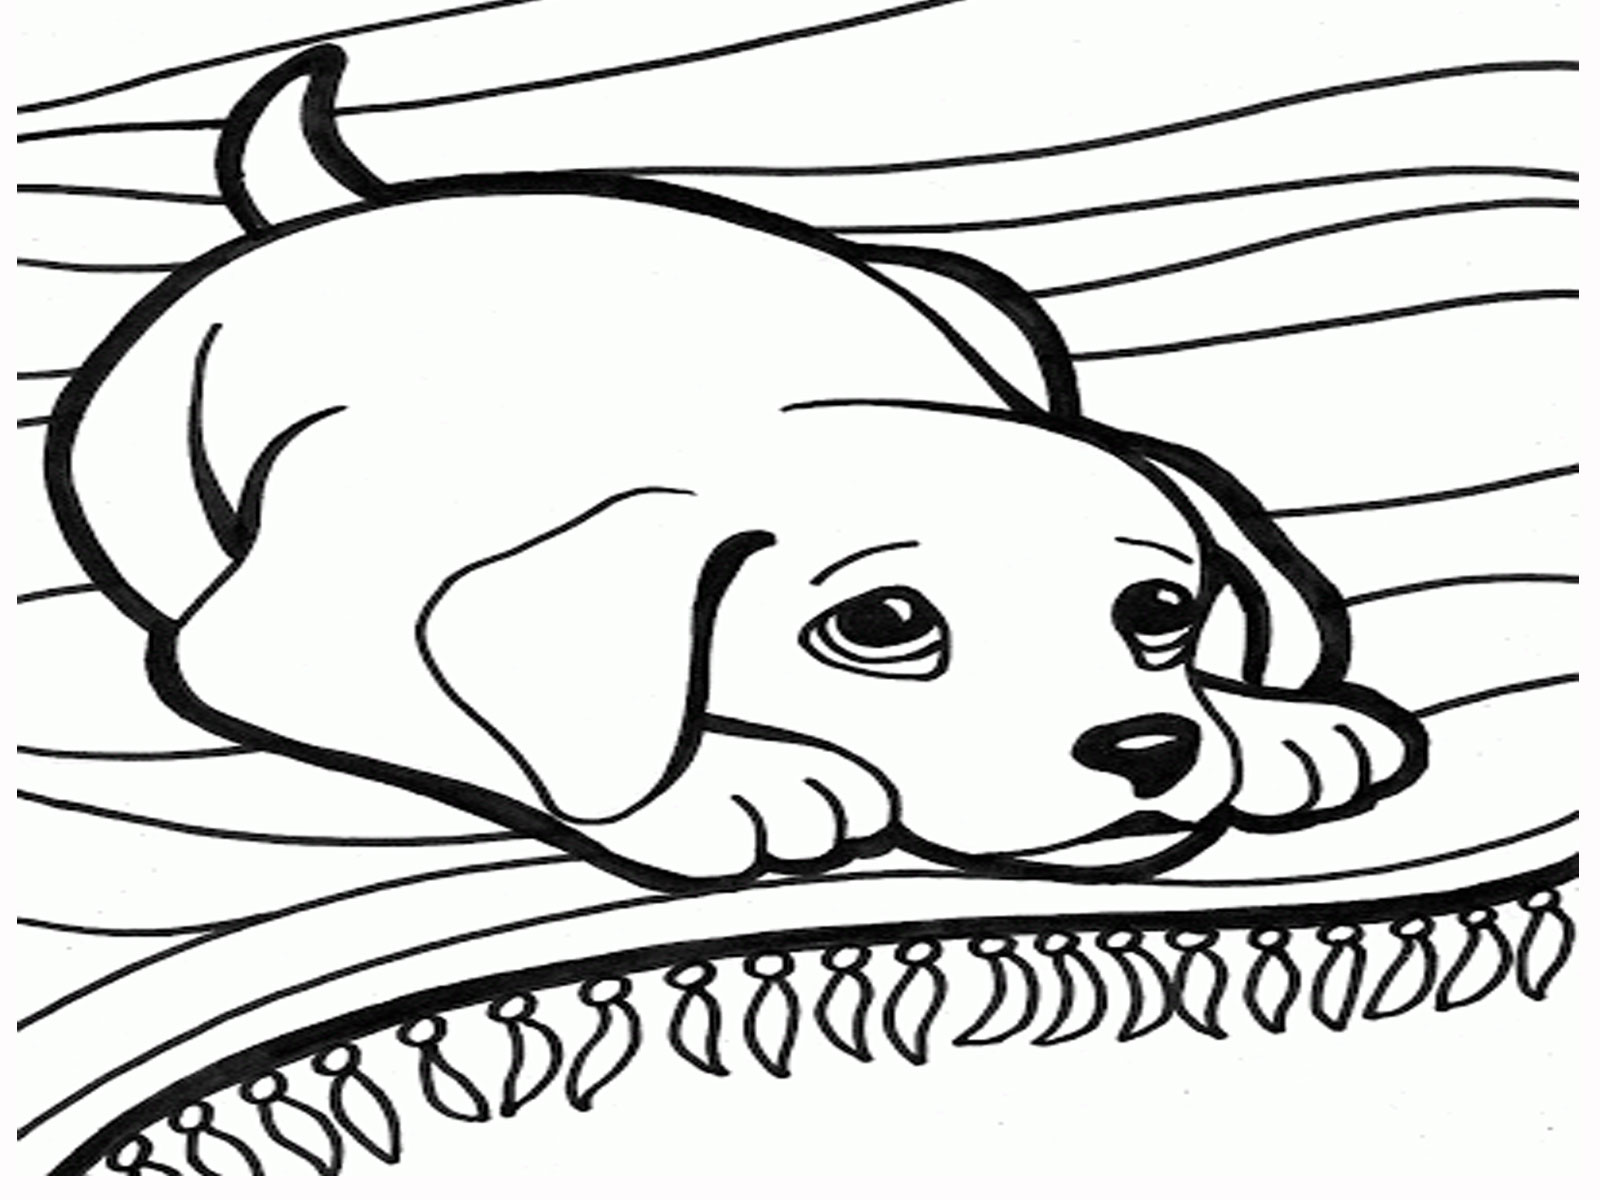 1600x1200 Best Wmgpgru In Dog Coloring Pages On With Hd Resolution